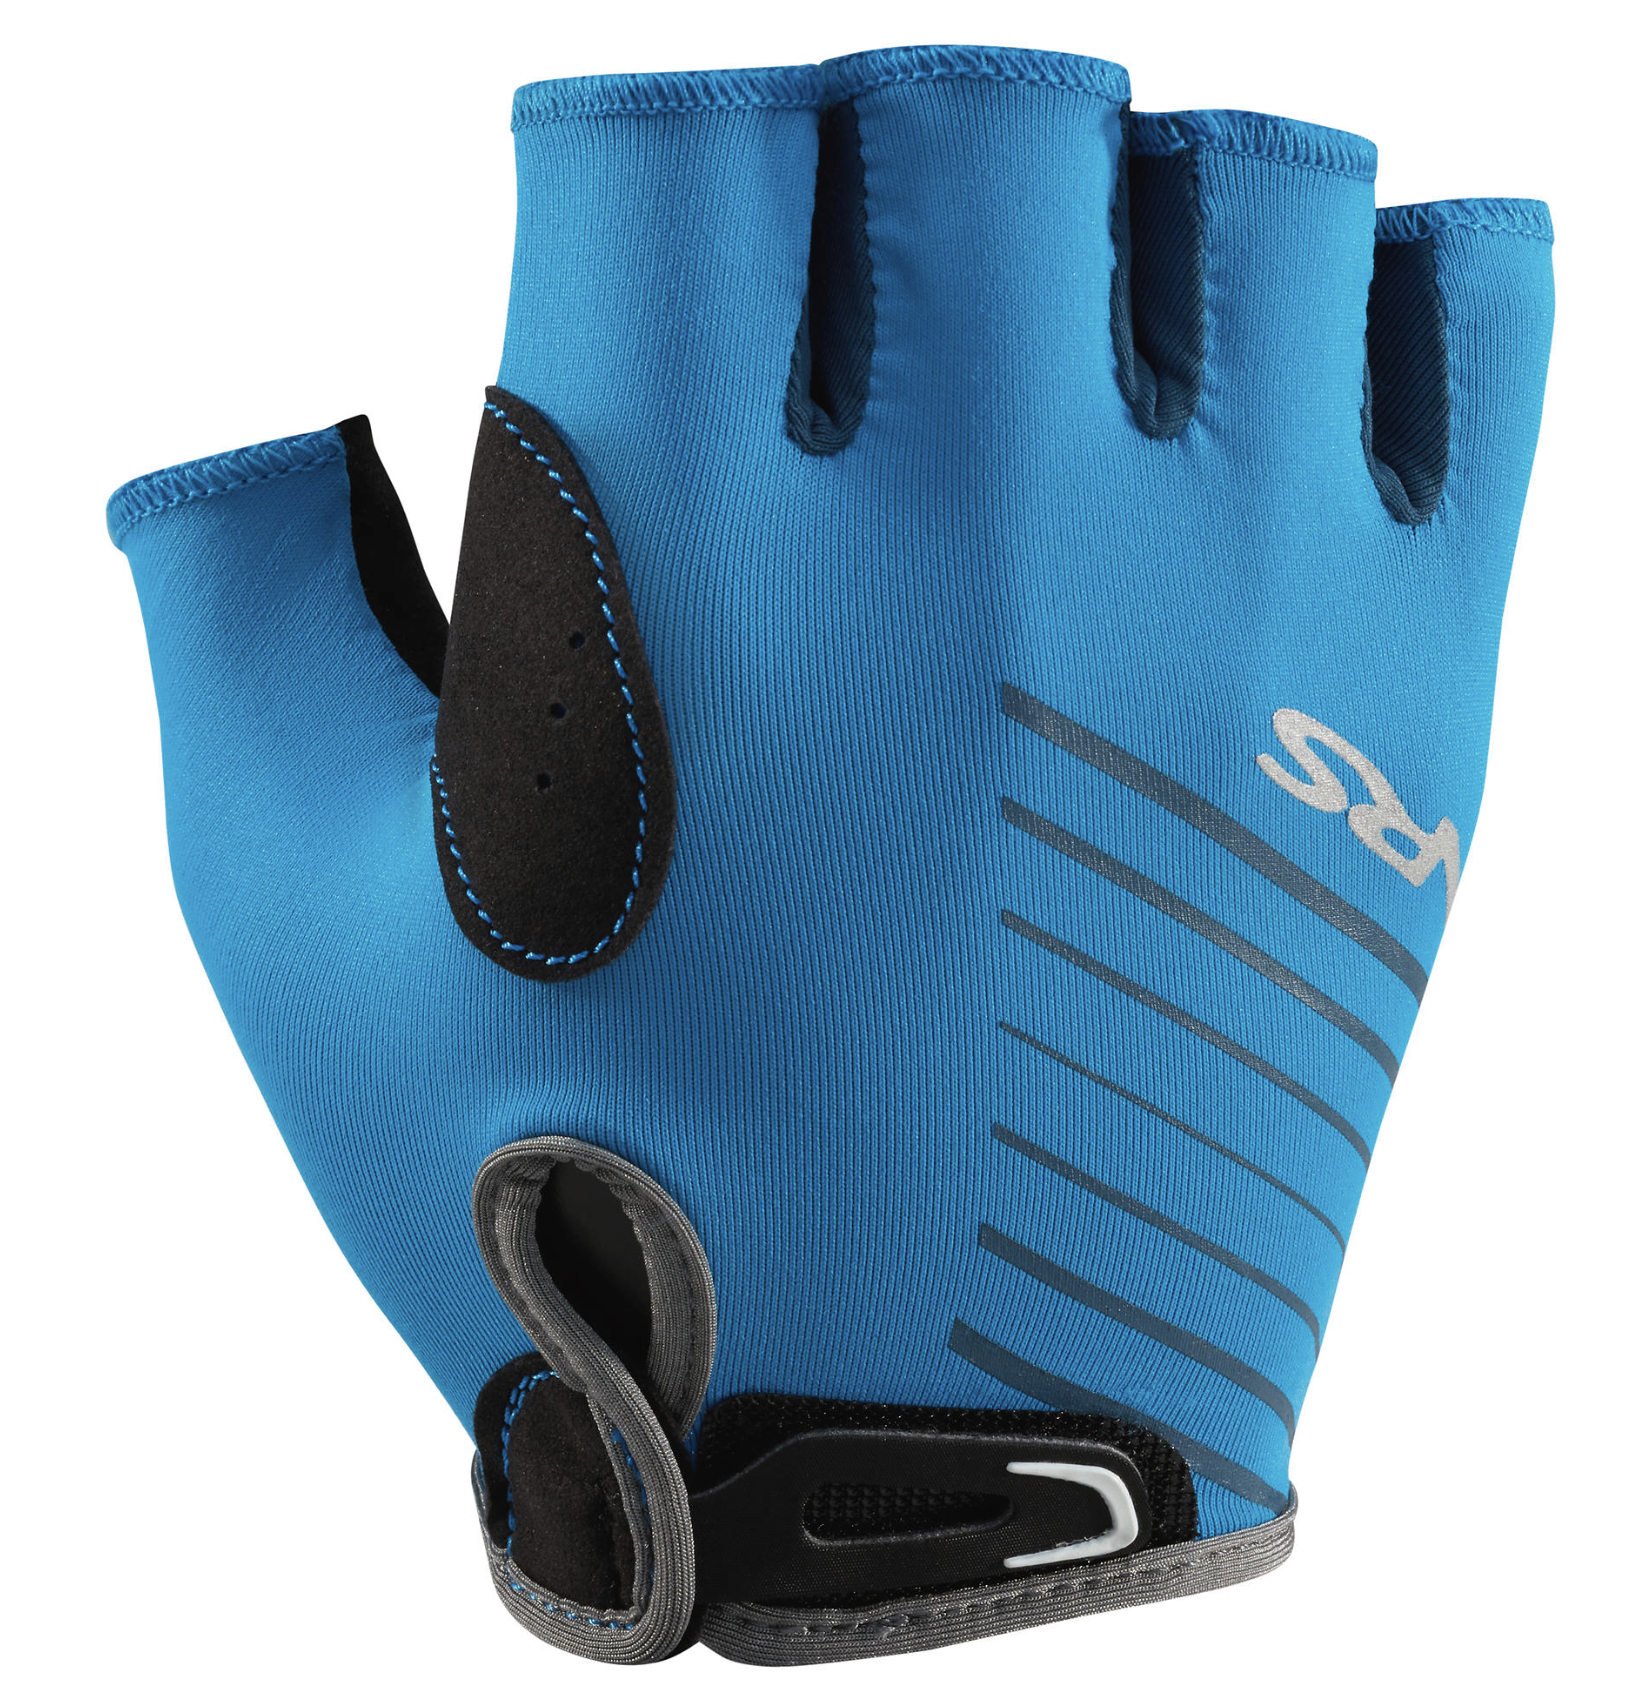 Handwear: Men's Boater's Gloves by NRS - Image 4804